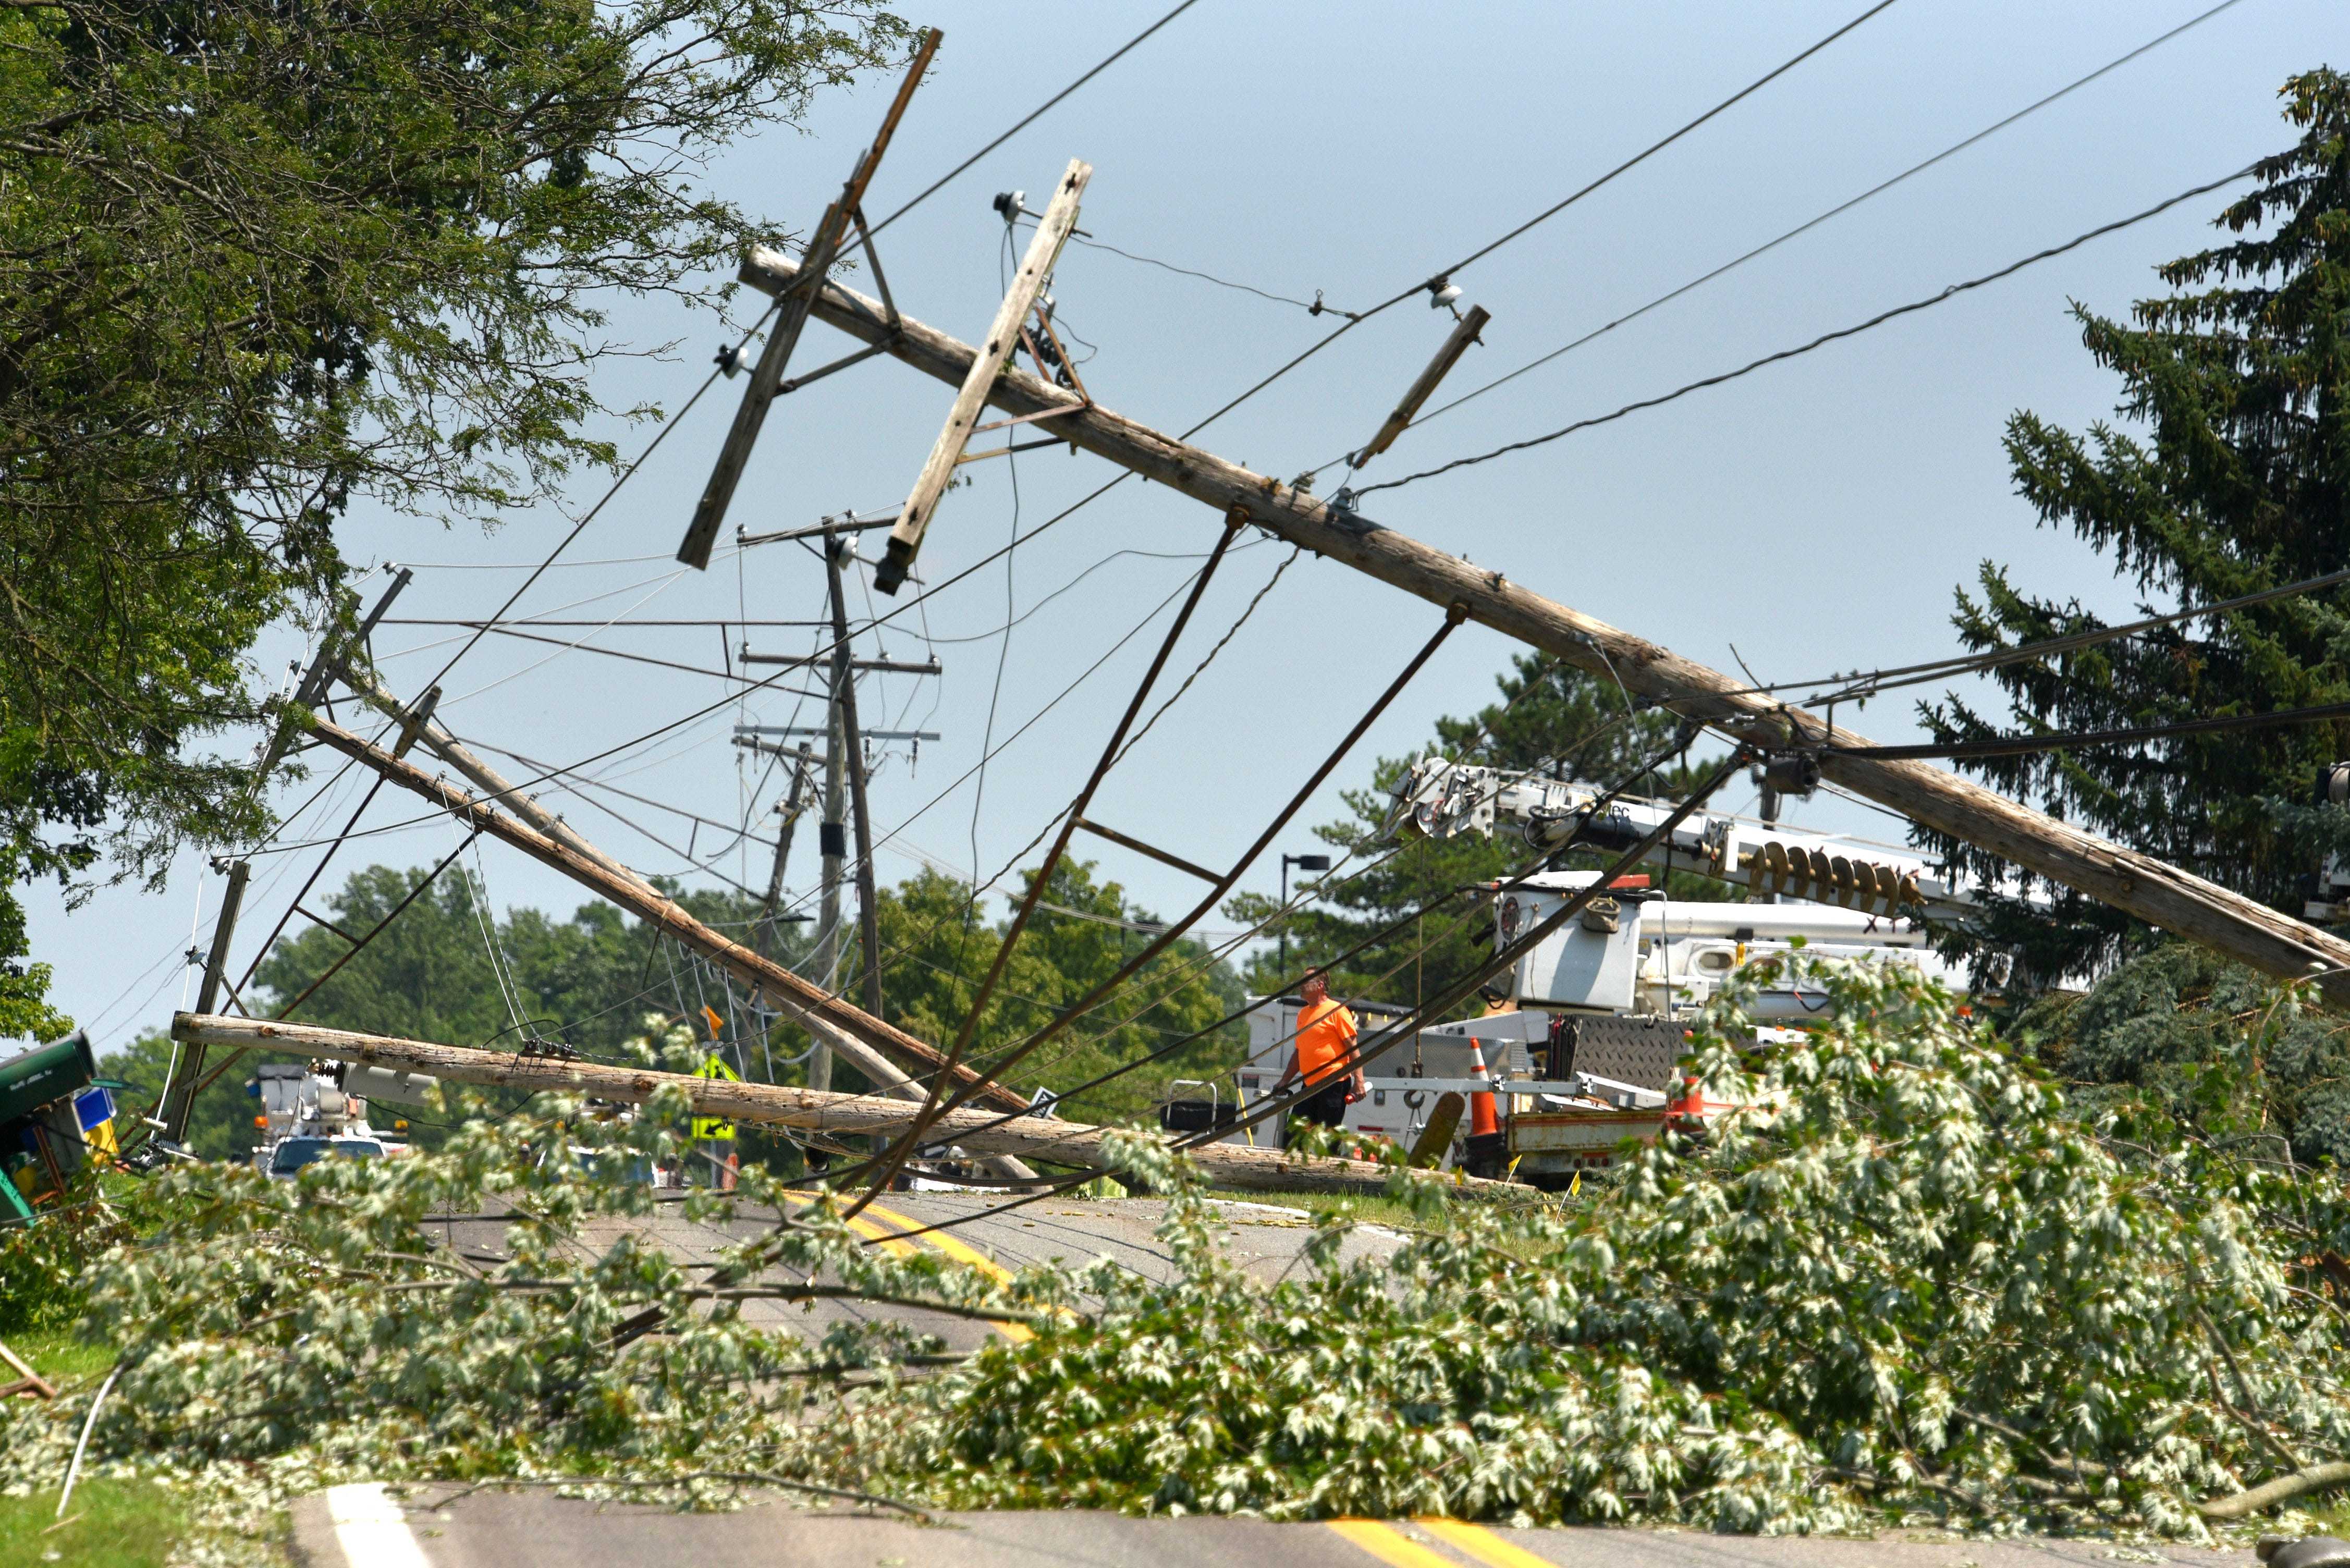 Thousands in Armada, Oakland Co. without power after storms